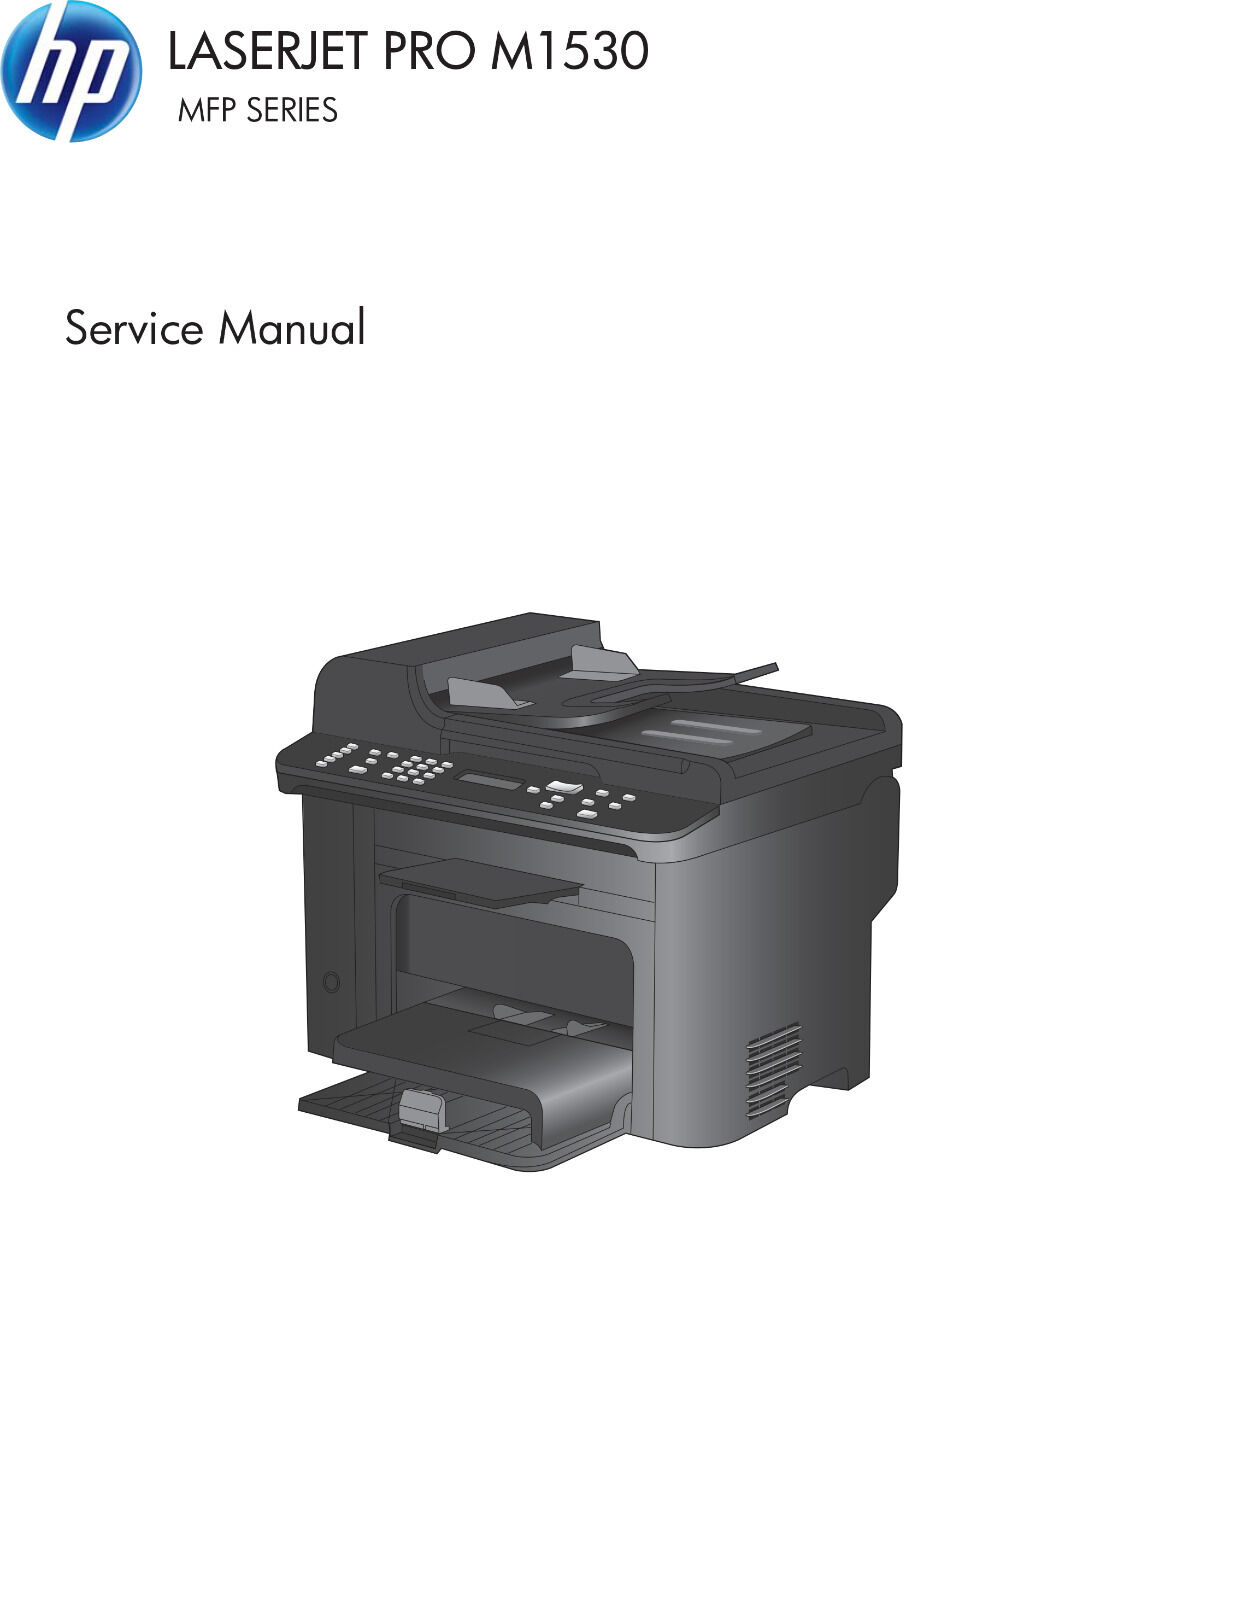 HP LaserJet Pro M1530 MFP Series - Service Manual PDF 1 of 4Only 1  available ...